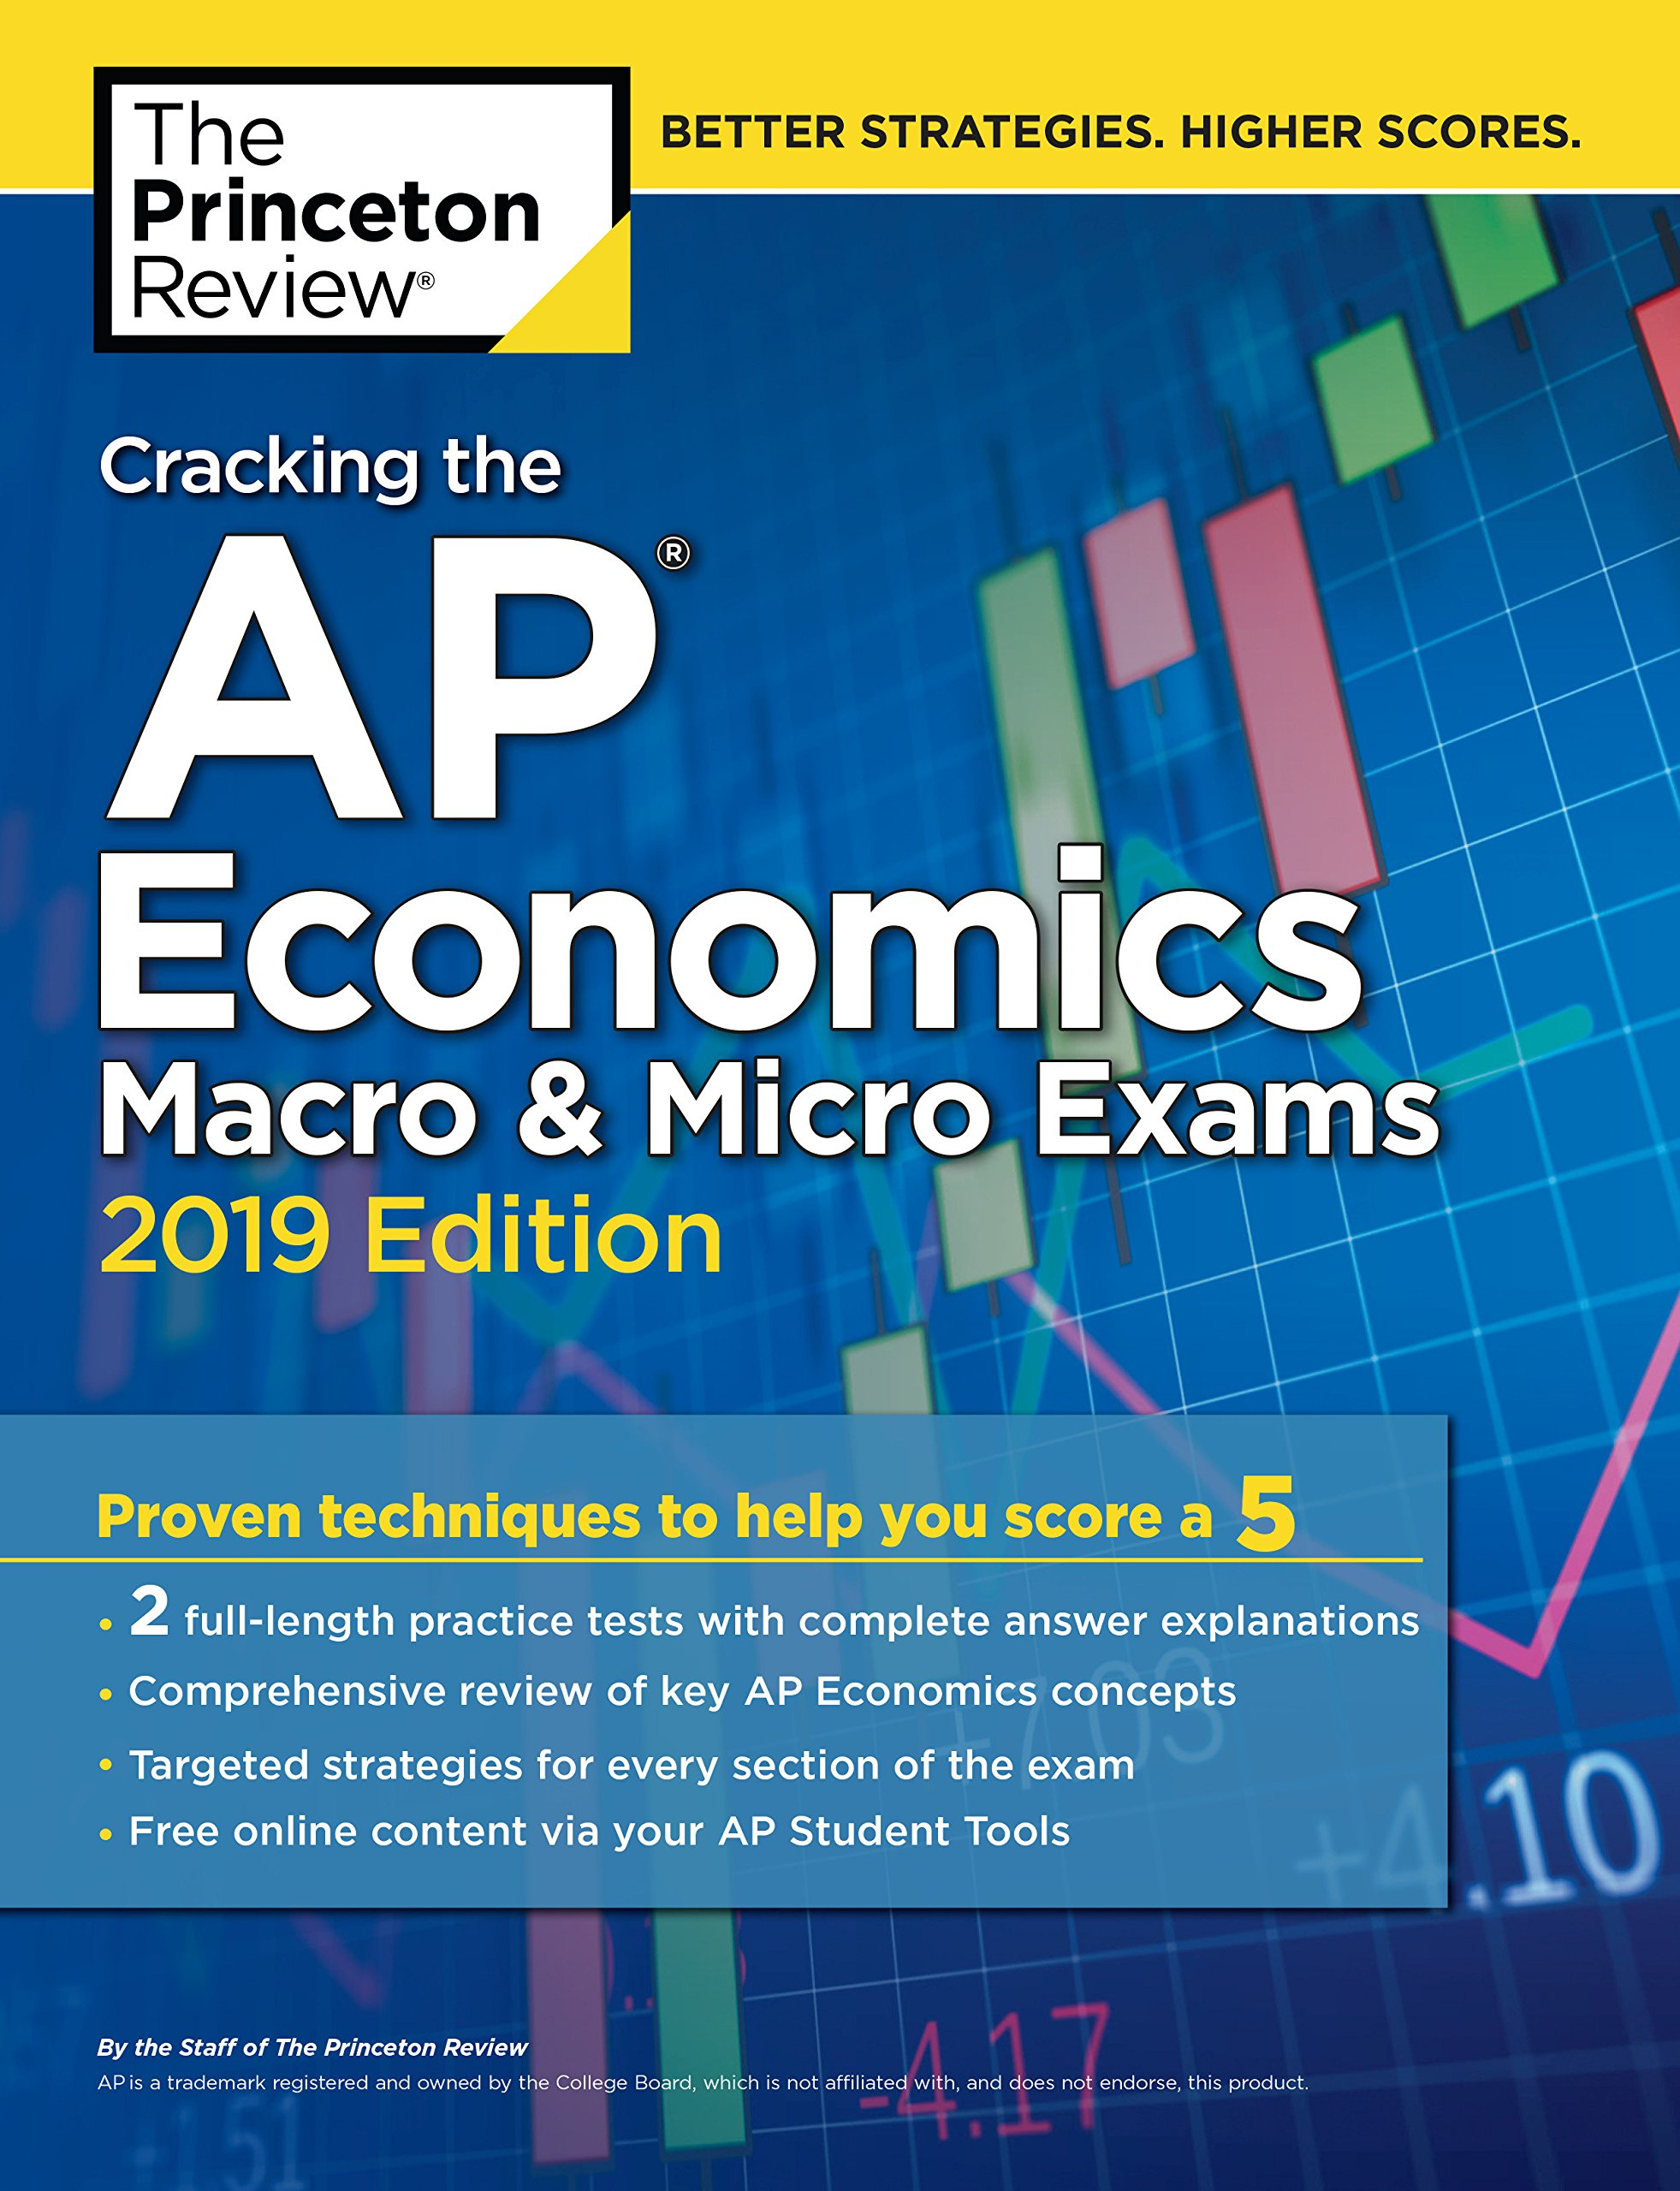 Cracking the AP Economics Macro & Micro Exams, 2019 Edition: Practice Tests & Proven Techniques to Help You Score a 5 (College Test Preparation) by Princeton Review (Image #1)